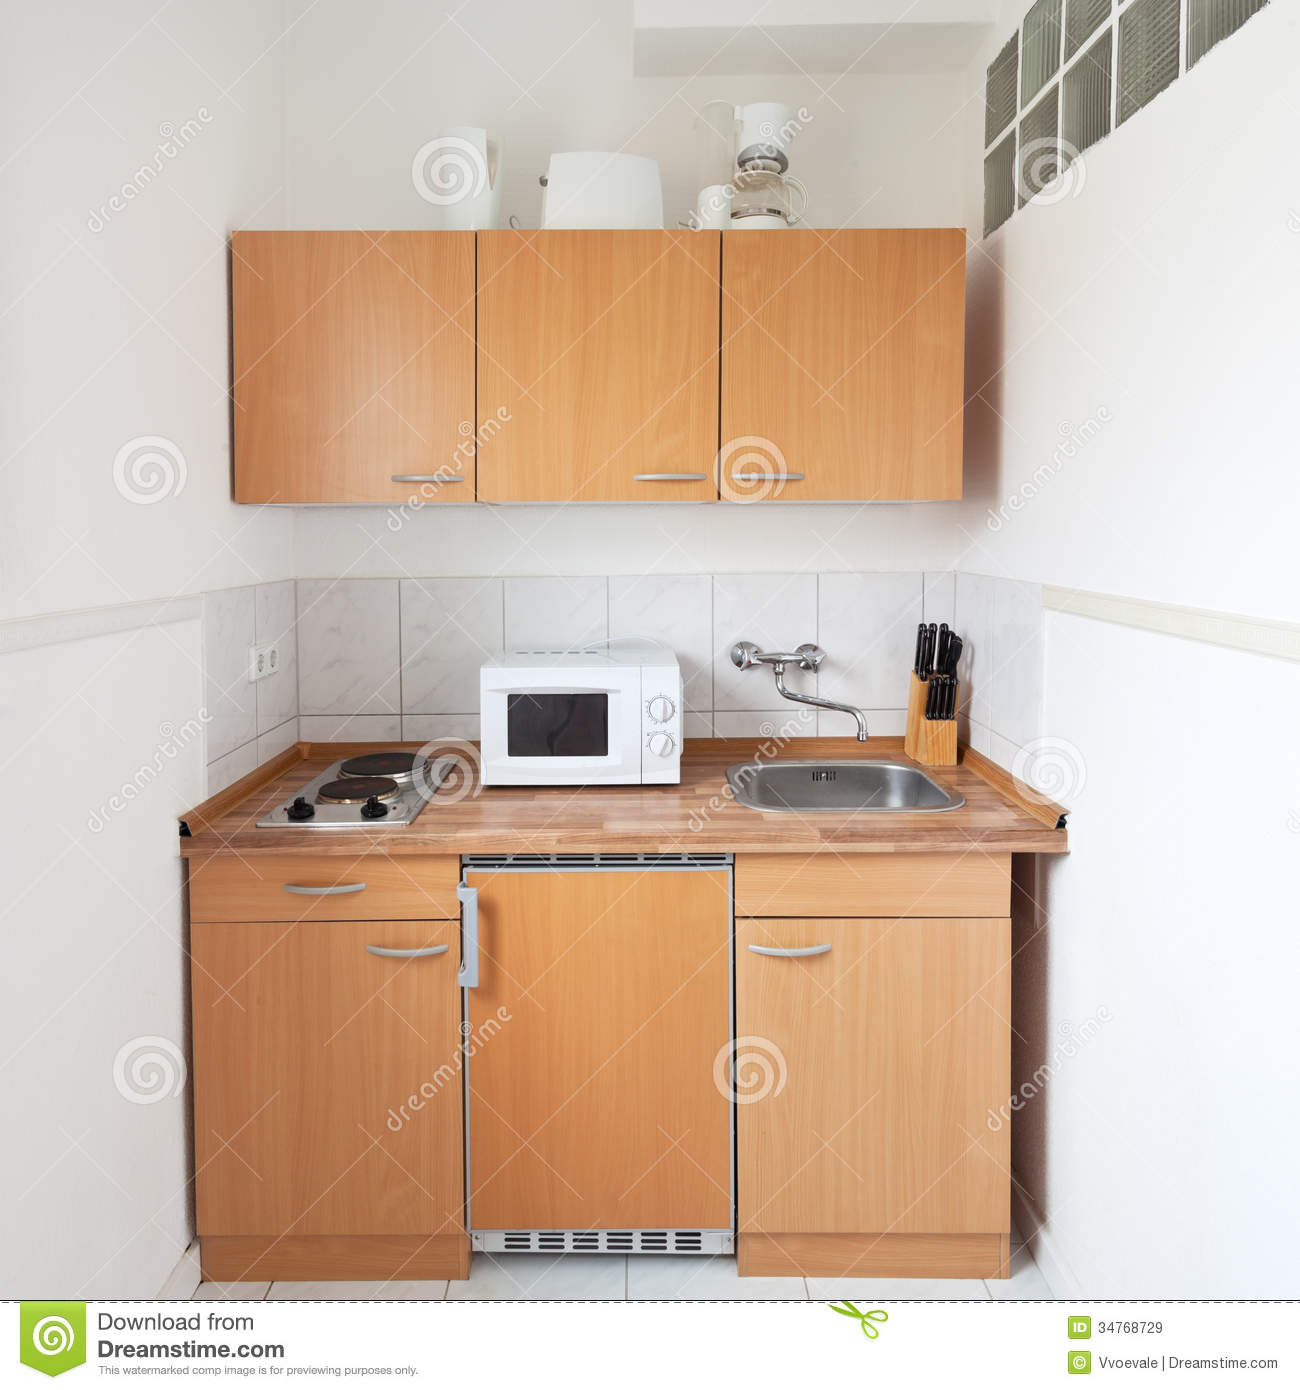 Simple Kitchen With Furniture Set Stock Image Image